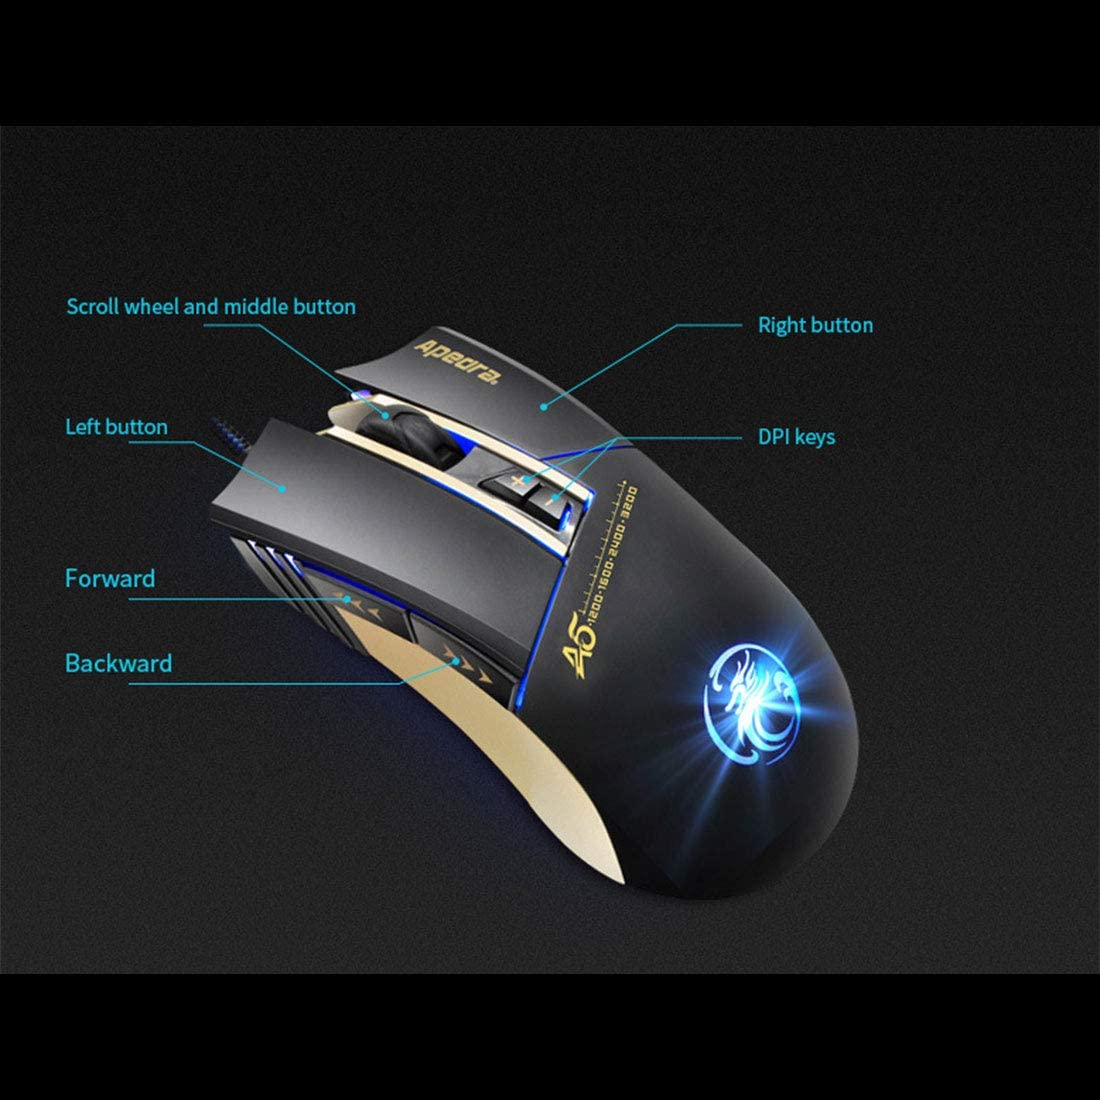 Hexiaoyi New Mouse for Wired Mouse Professional Gaming Mouse Game Mouse Color : 5 Black e-Commerce Version